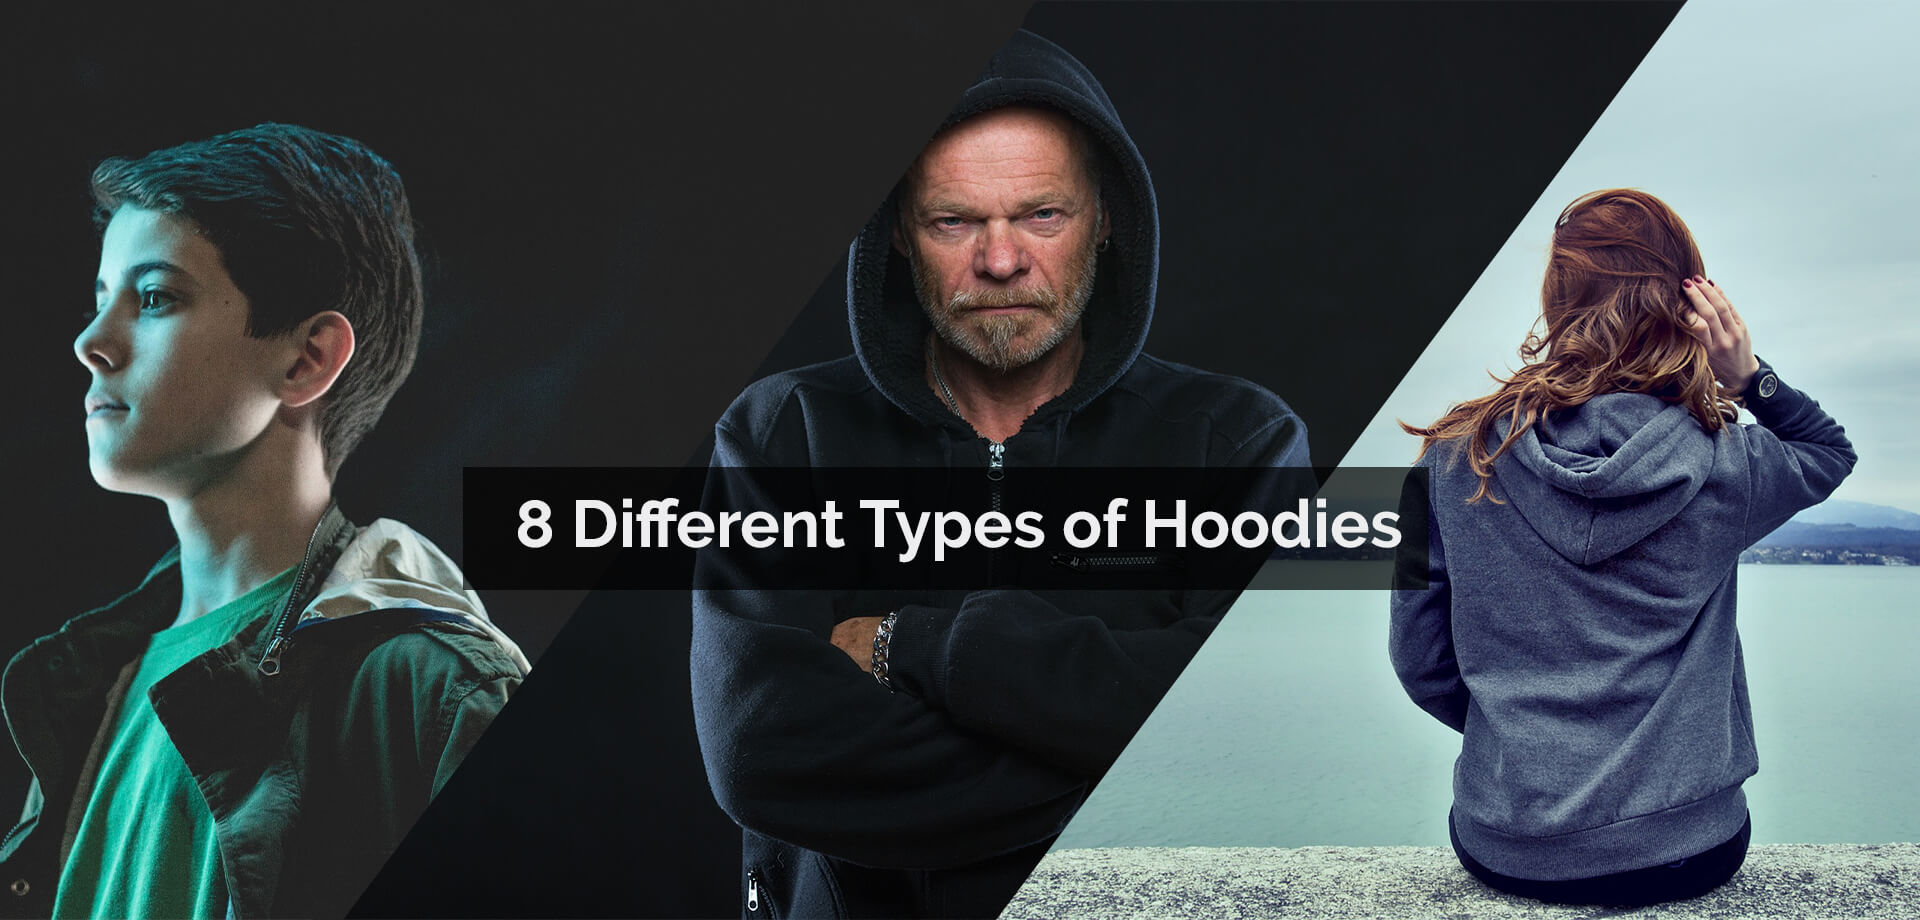 8 Different Types of Hoodies